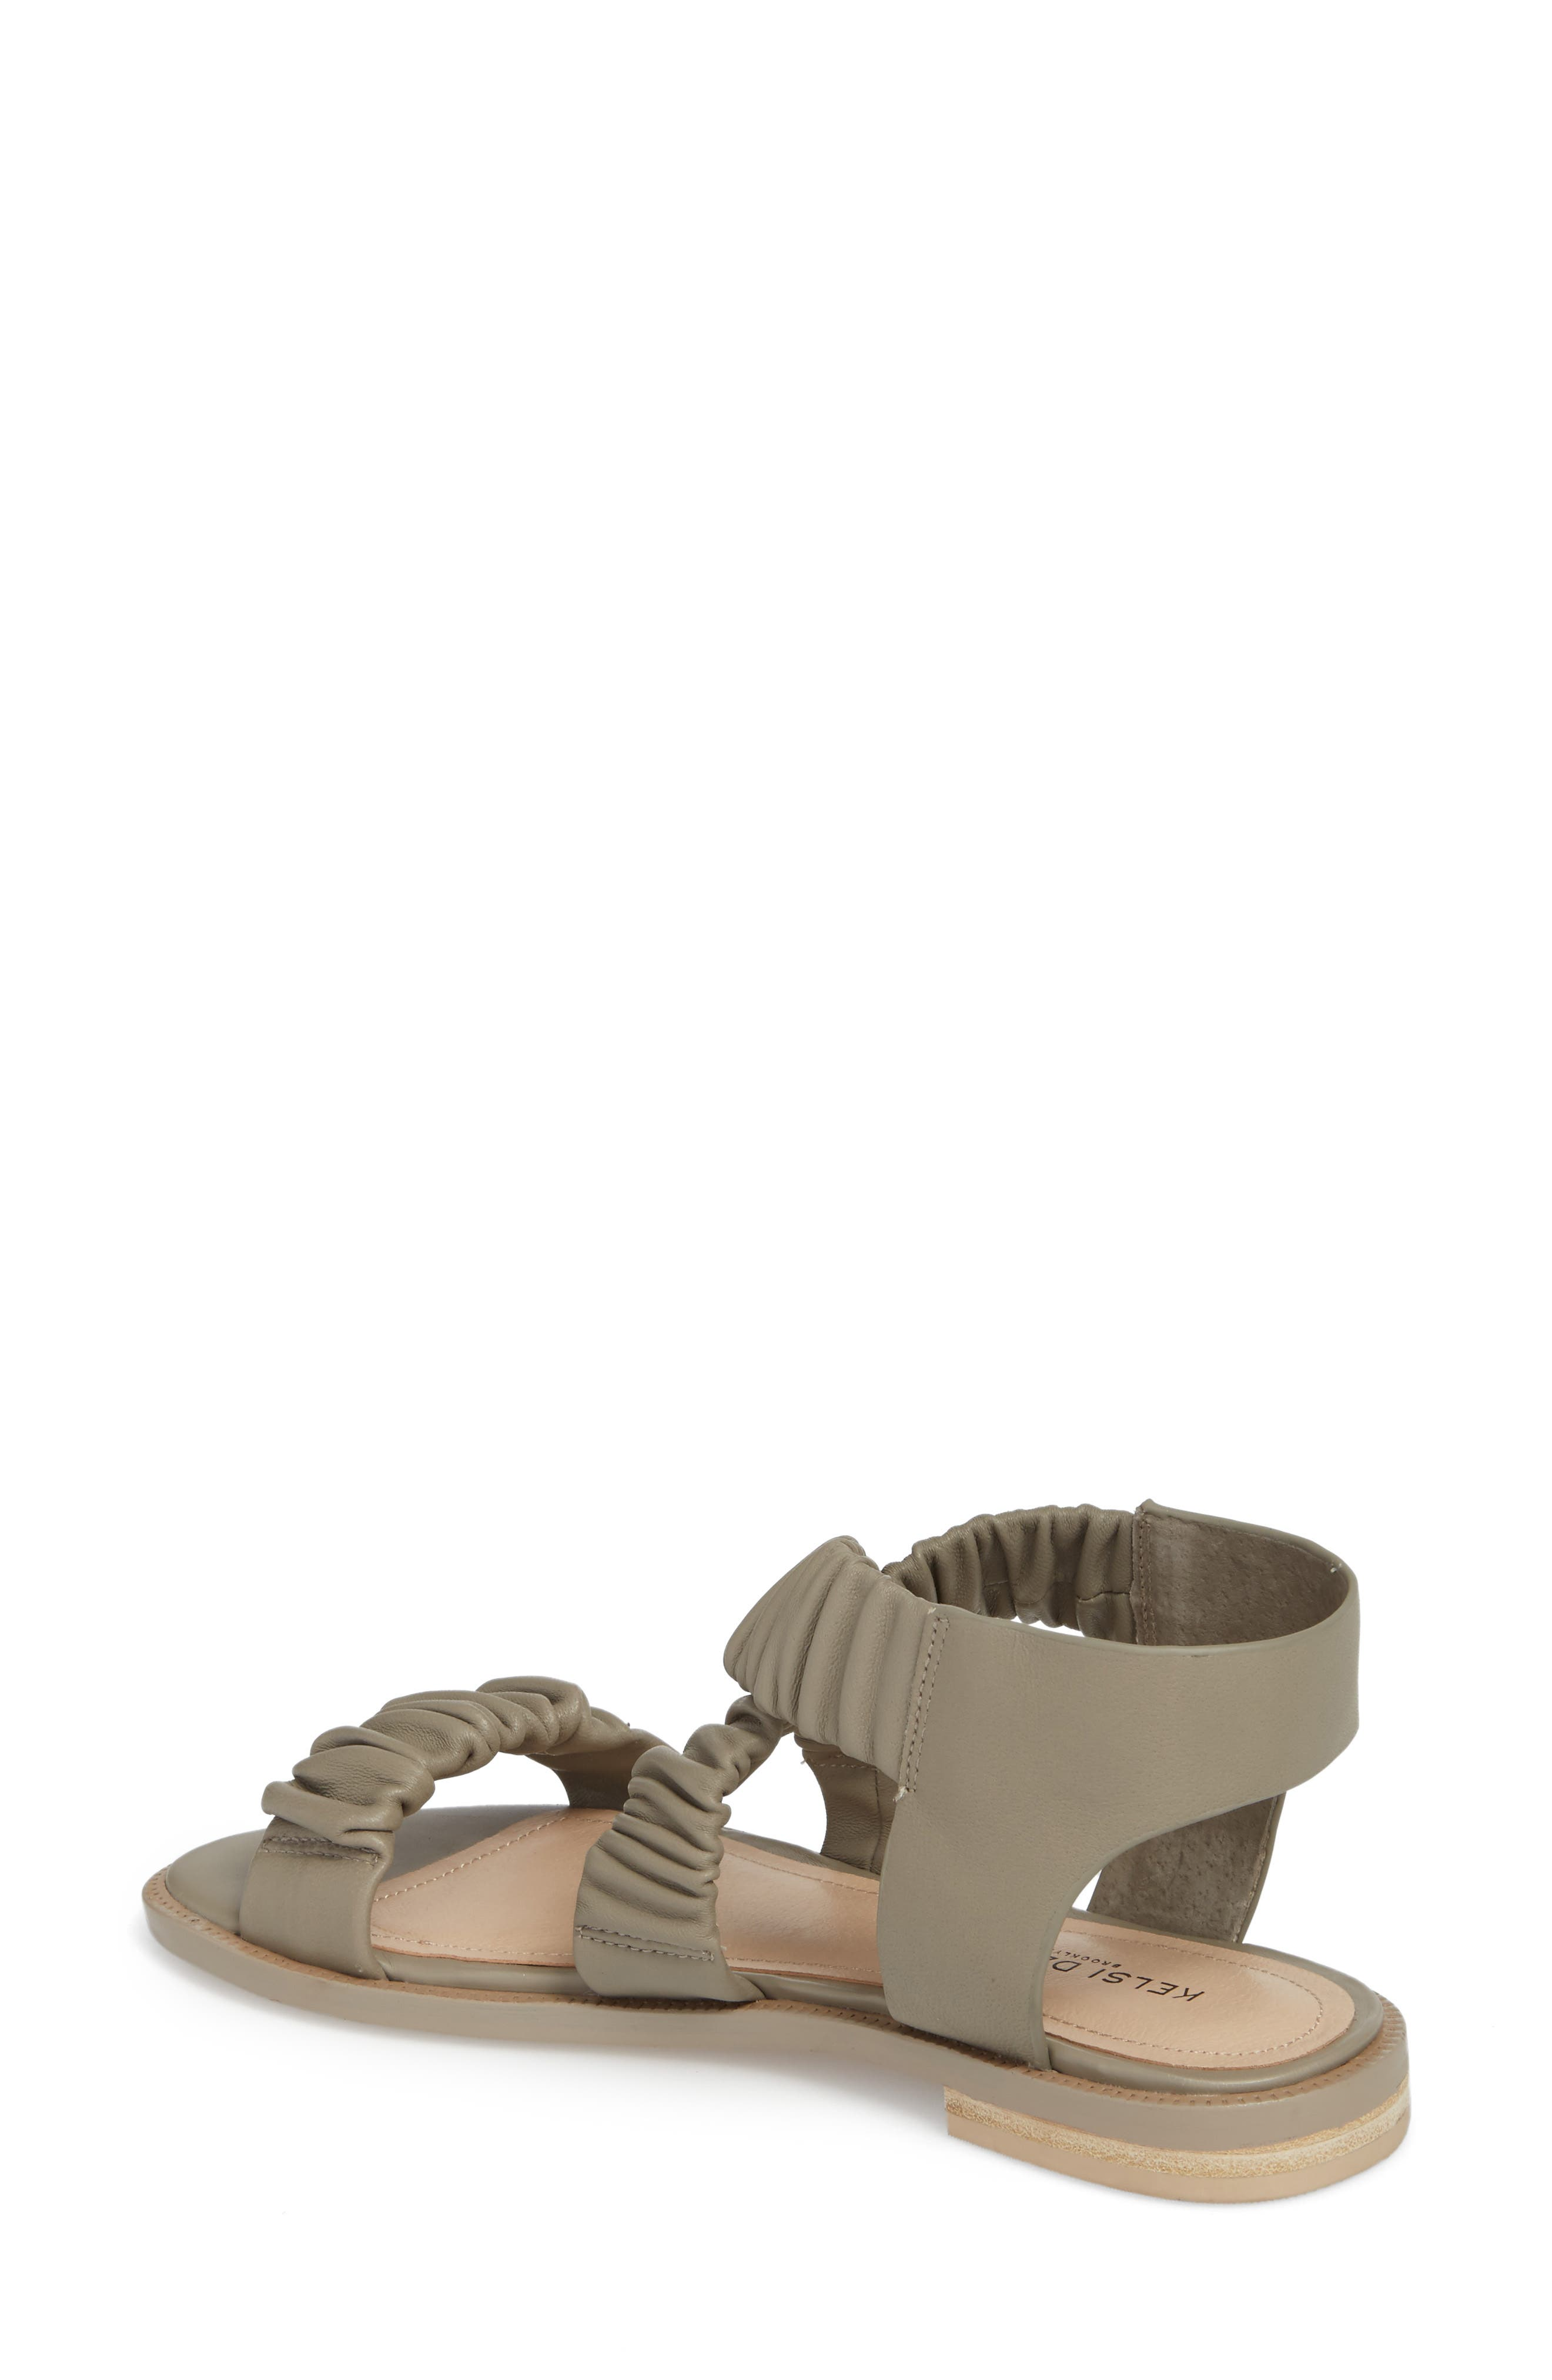 Ryder Pleated Flat Sandal,                             Alternate thumbnail 2, color,                             Clove Leather